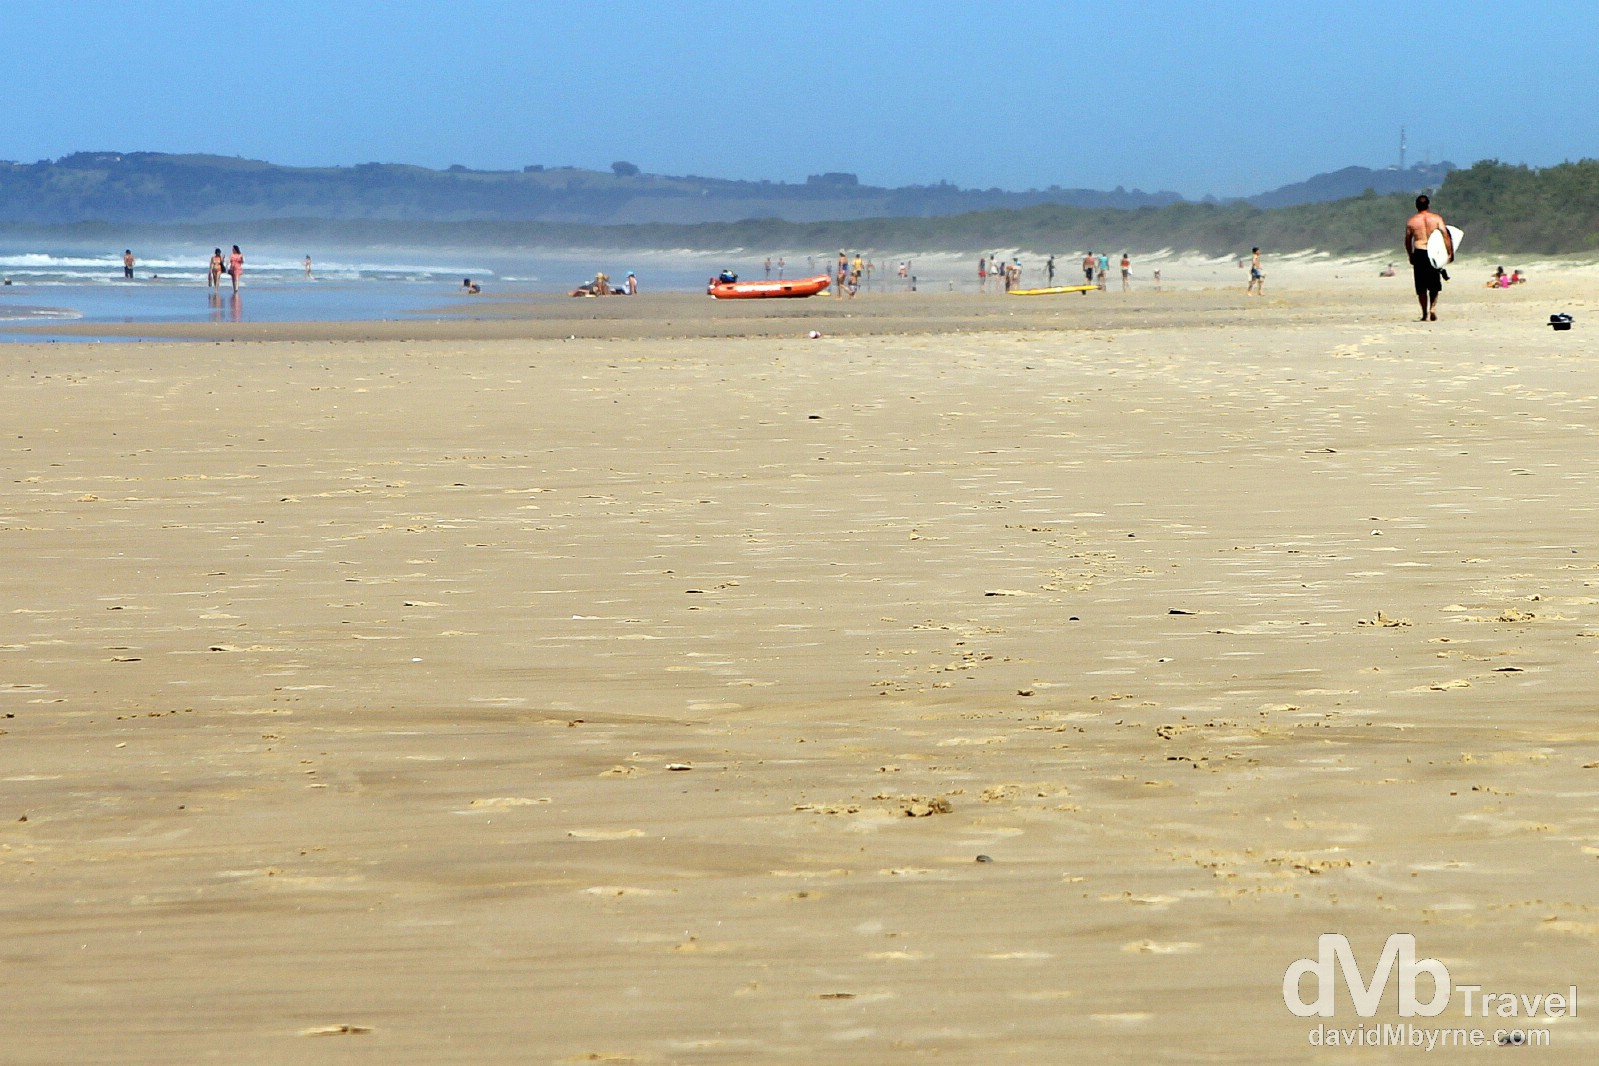 The expanse of Brunswick Heads beach, New South Wales, Australia. April 7th 2012.